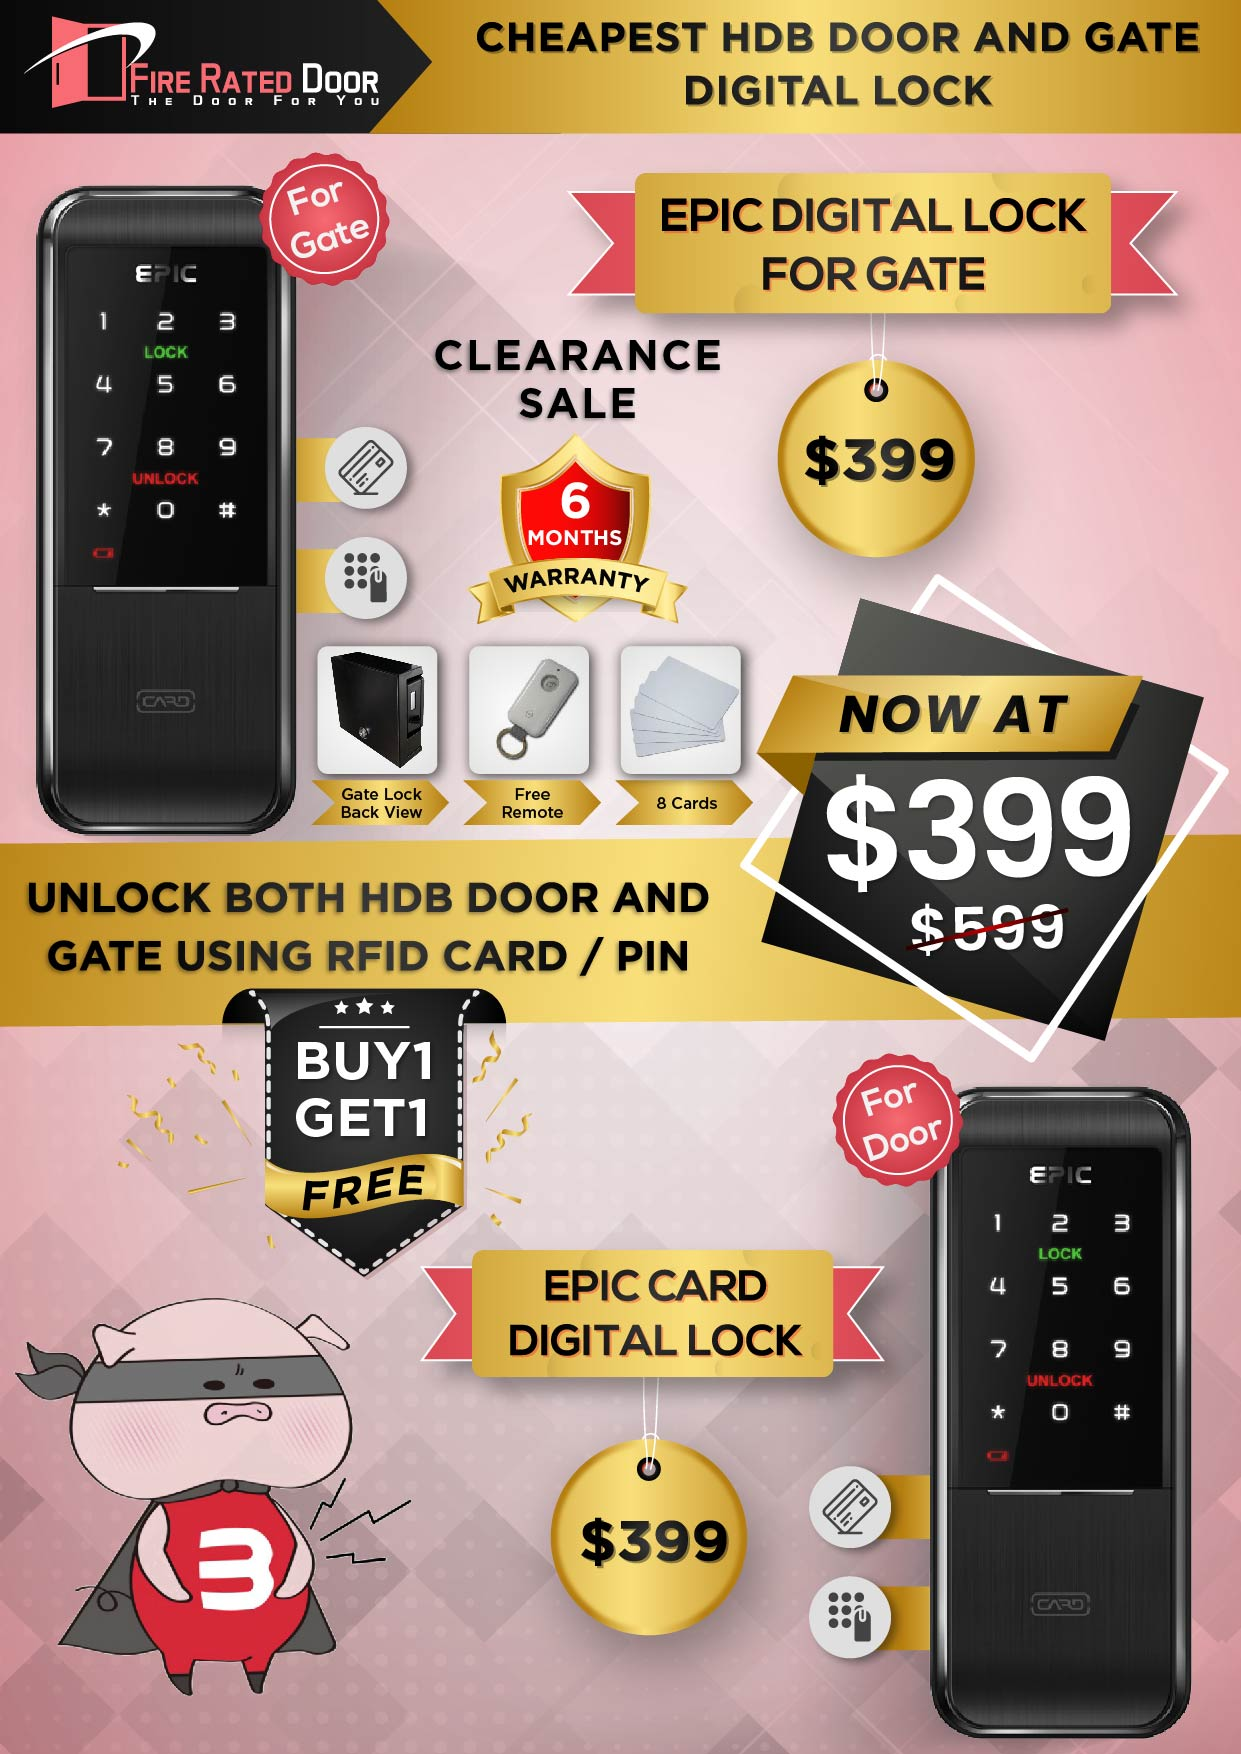 Cheapest HDB Door ad Gate Digital Lock